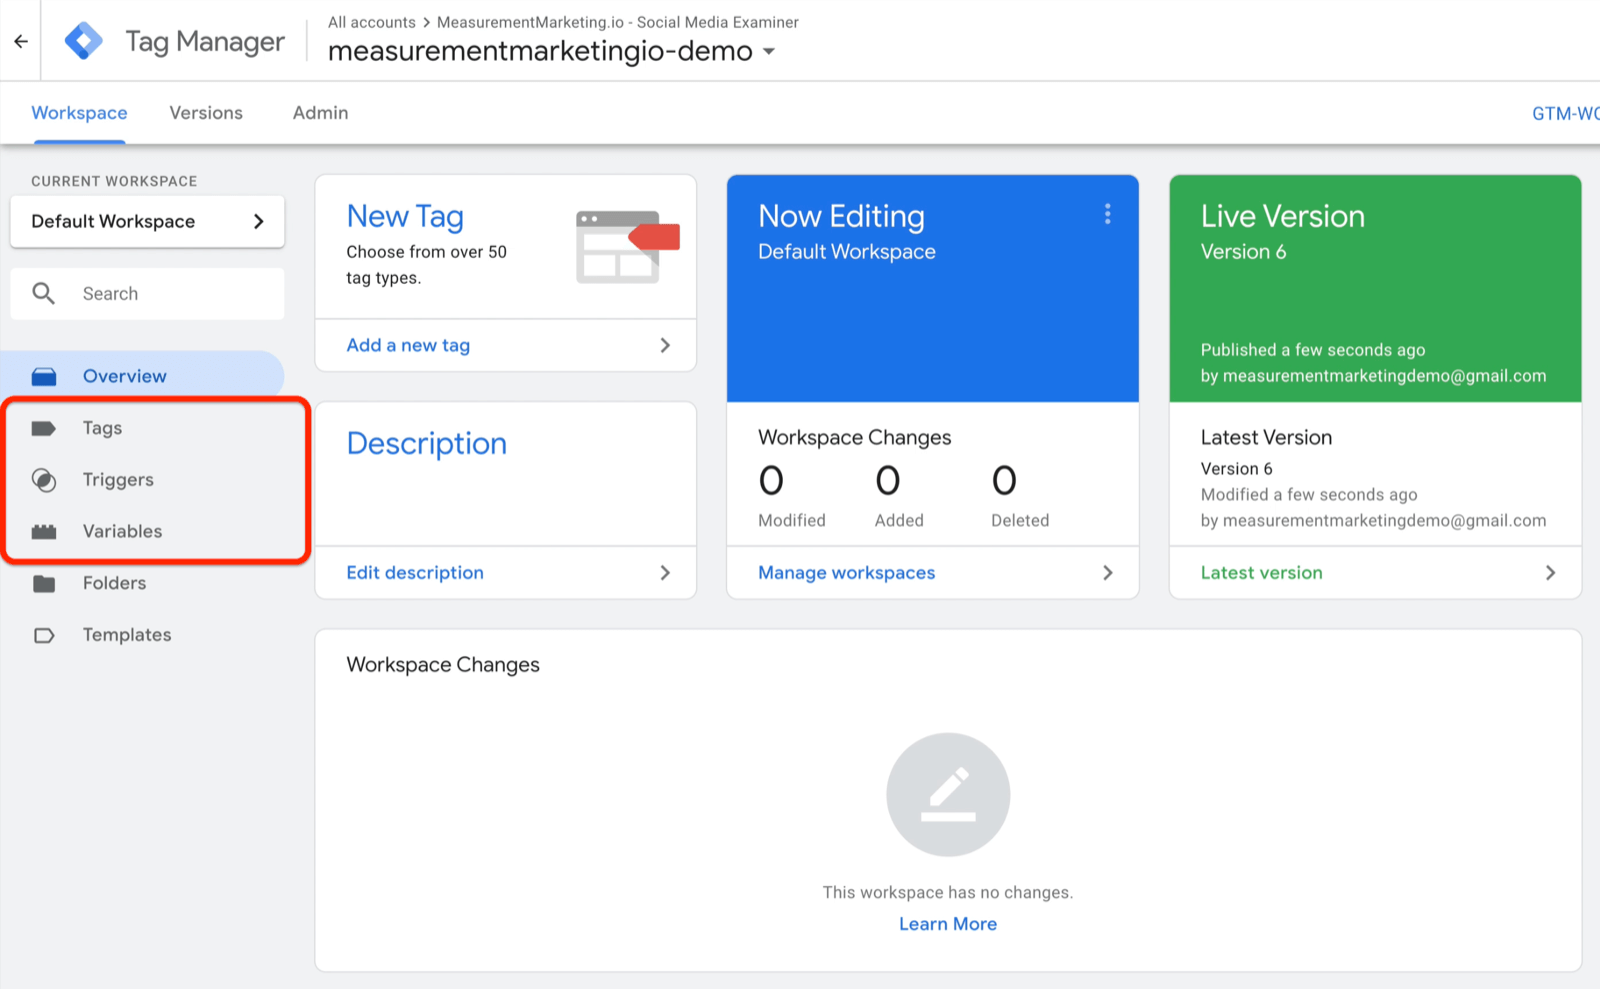 example google tag manager dashboard with menu options of tags, triggers, and variables highlighted